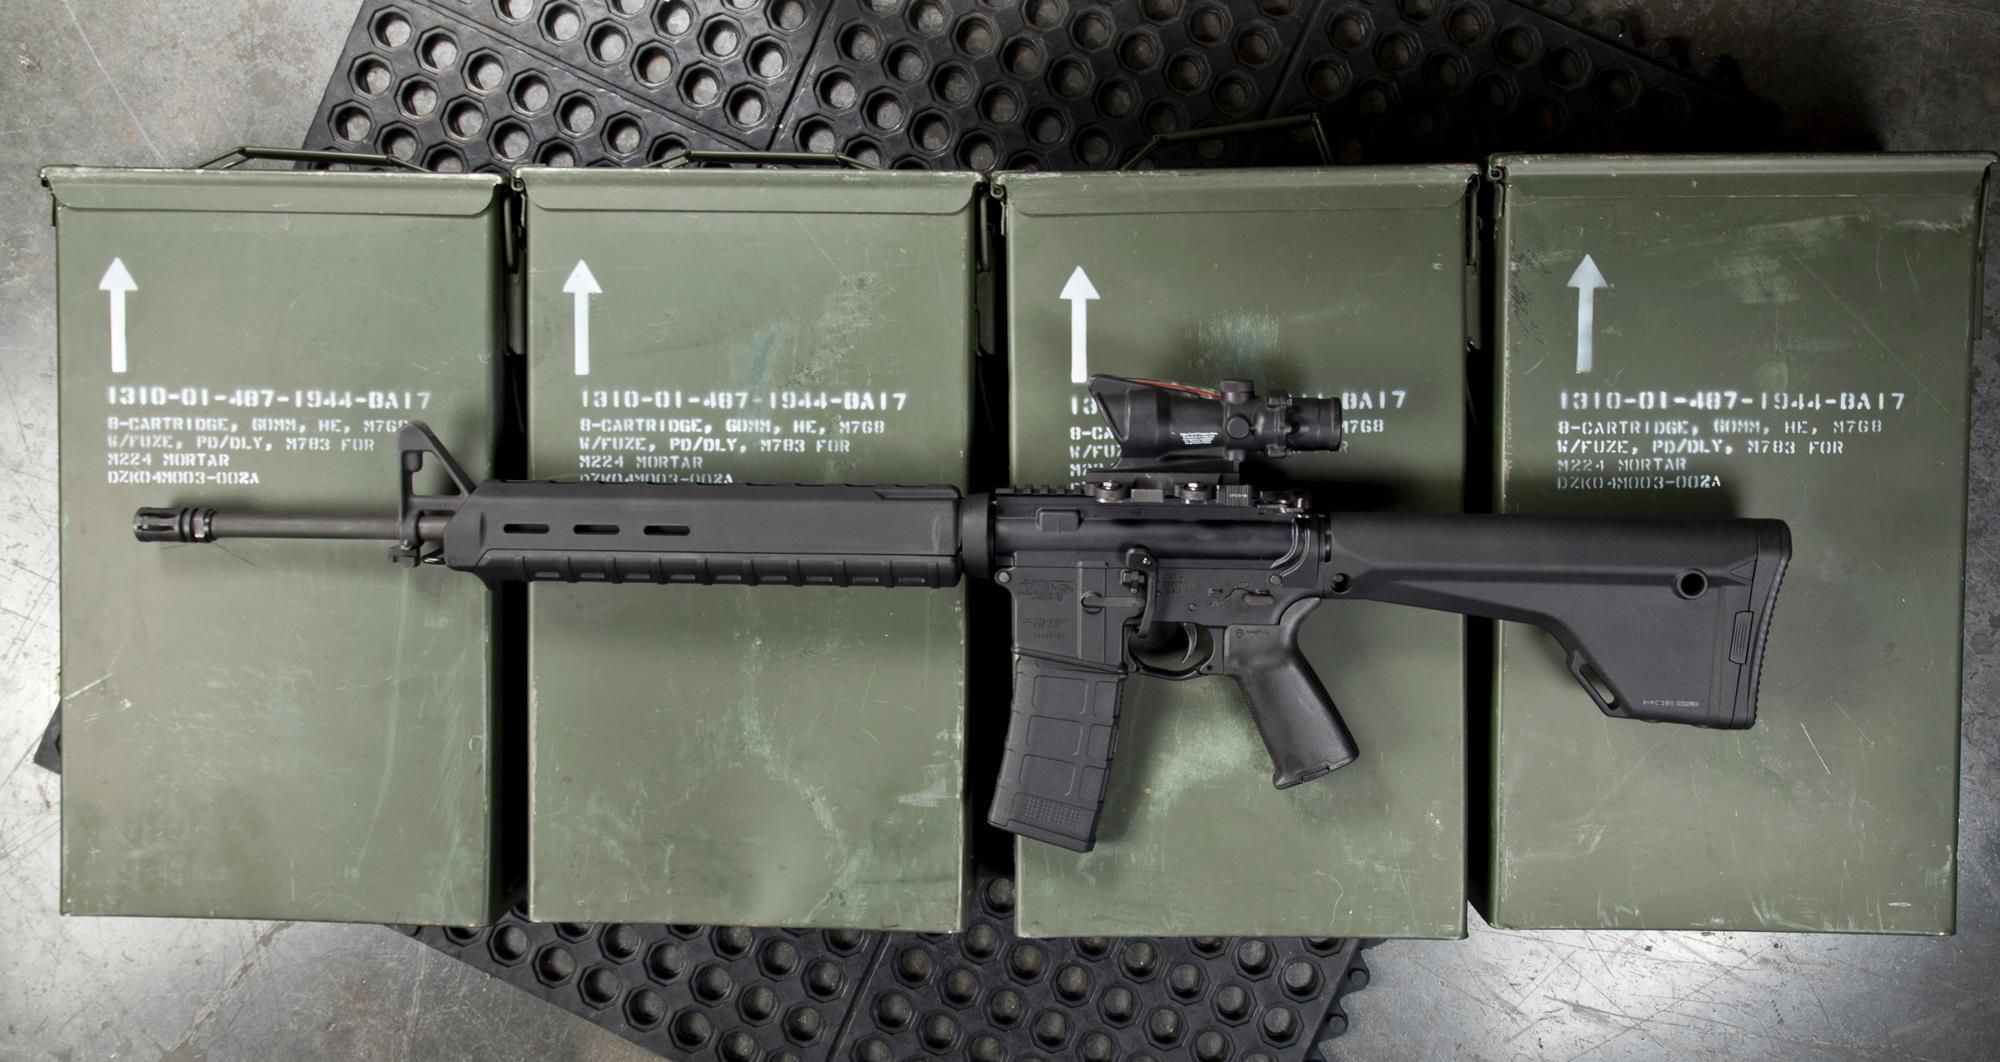 Magpul MOE Fixed Rifle Stock On A M16 Configured AR15 With Magpul Furniture.